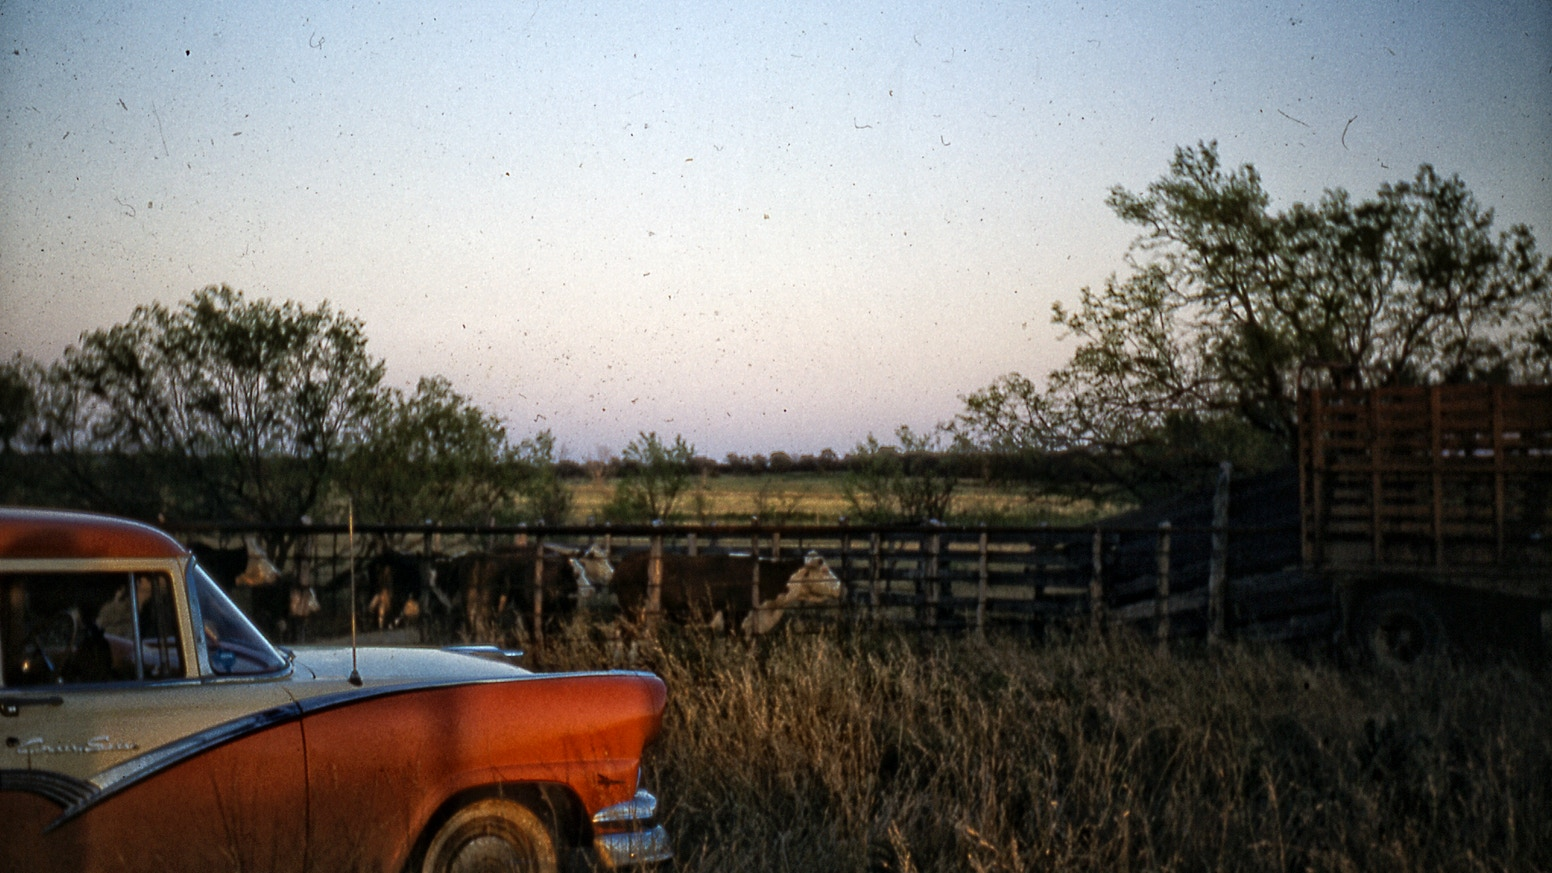 West Texas Interlude: Photos and Stories from the Desert by